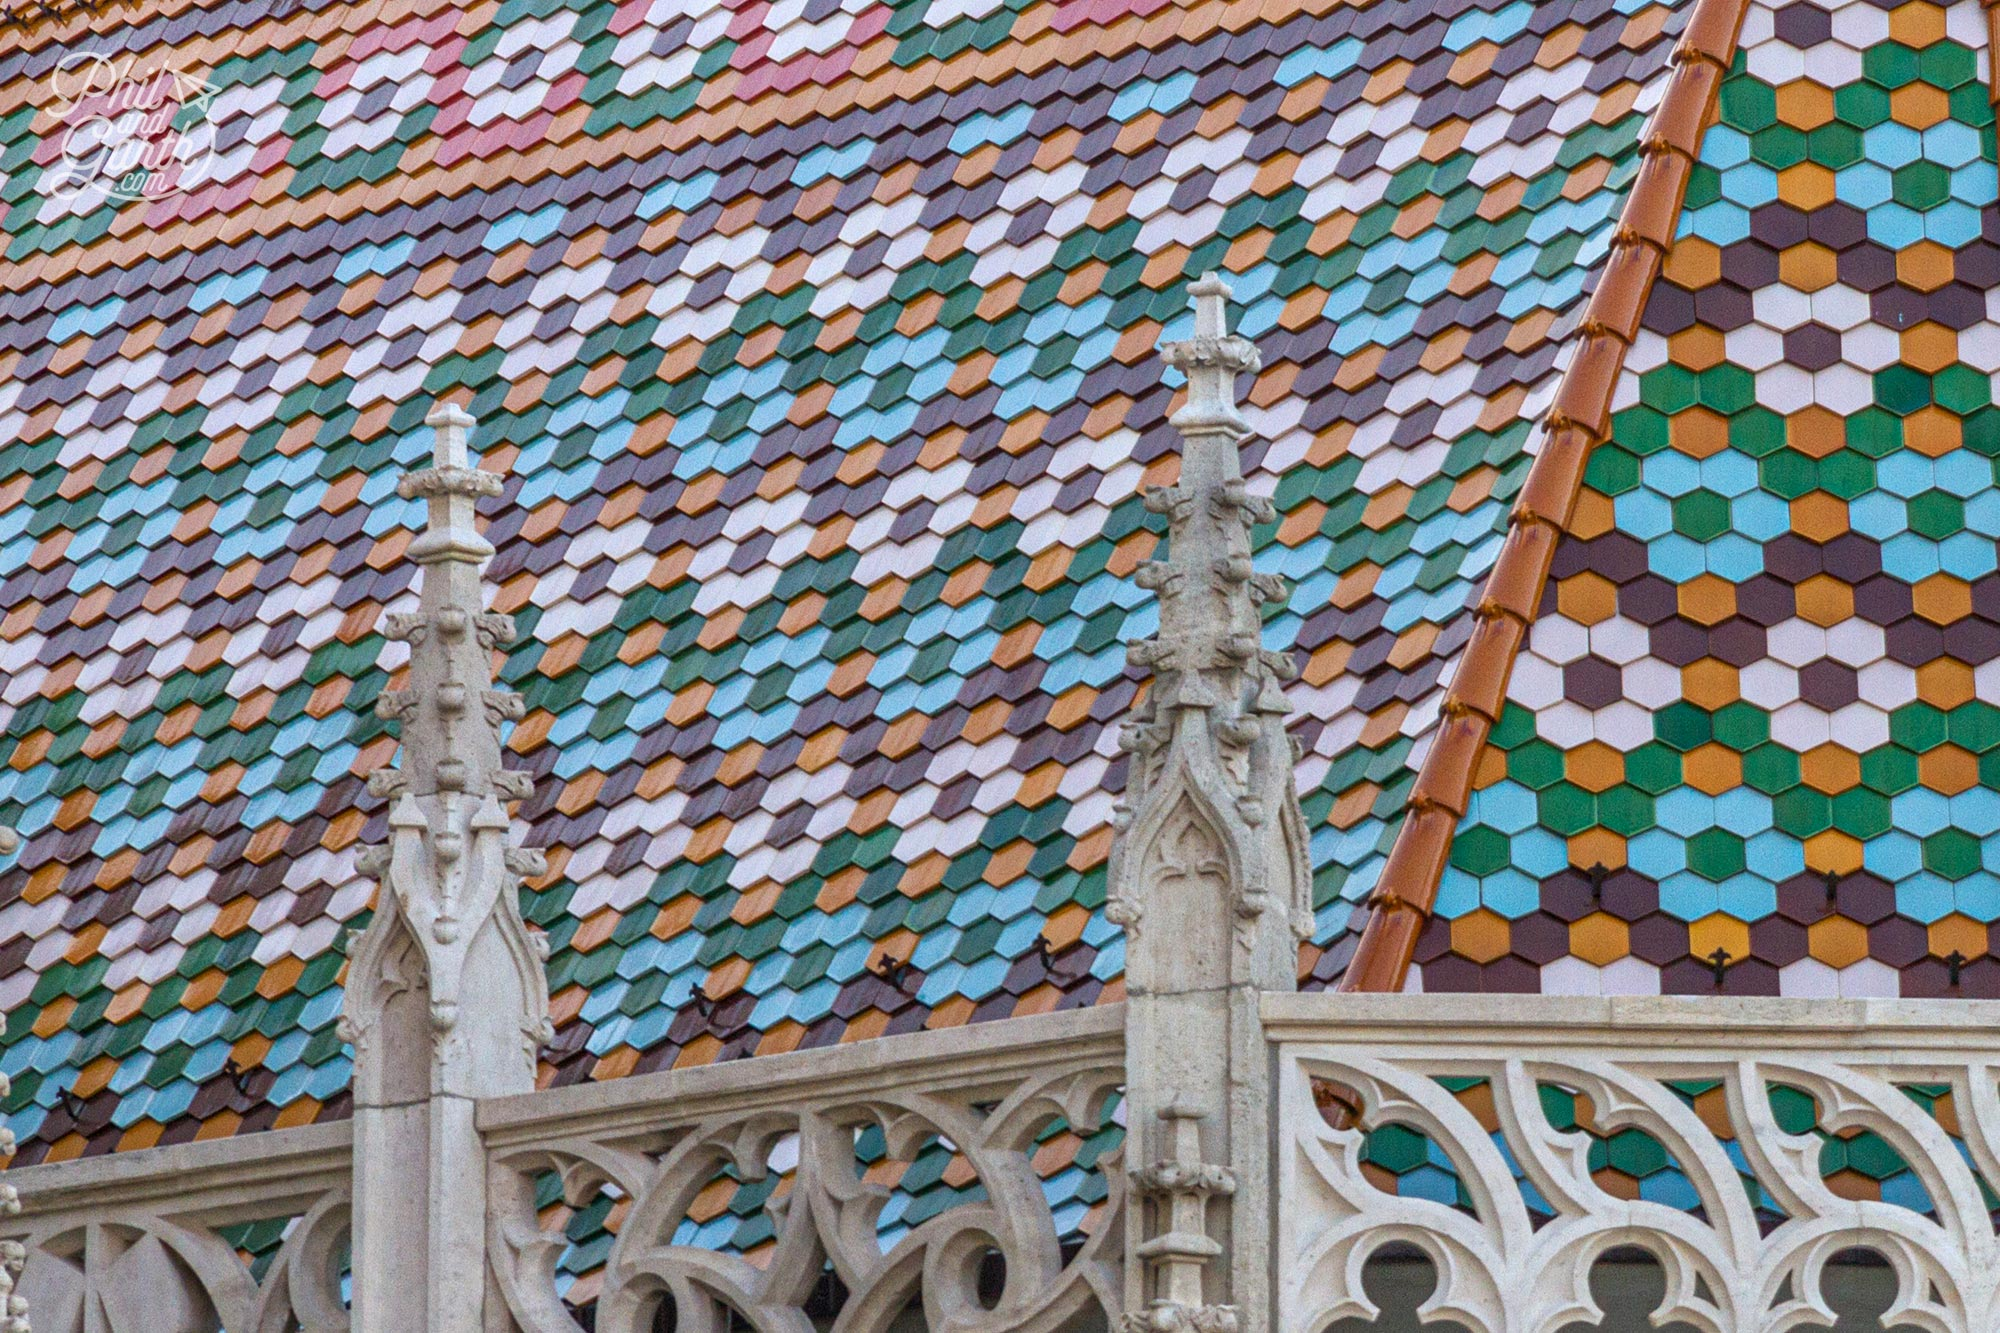 More of the roof tile art on the Traditional hungarian Roof tiles on the Matthias Church in Budapest Hungary